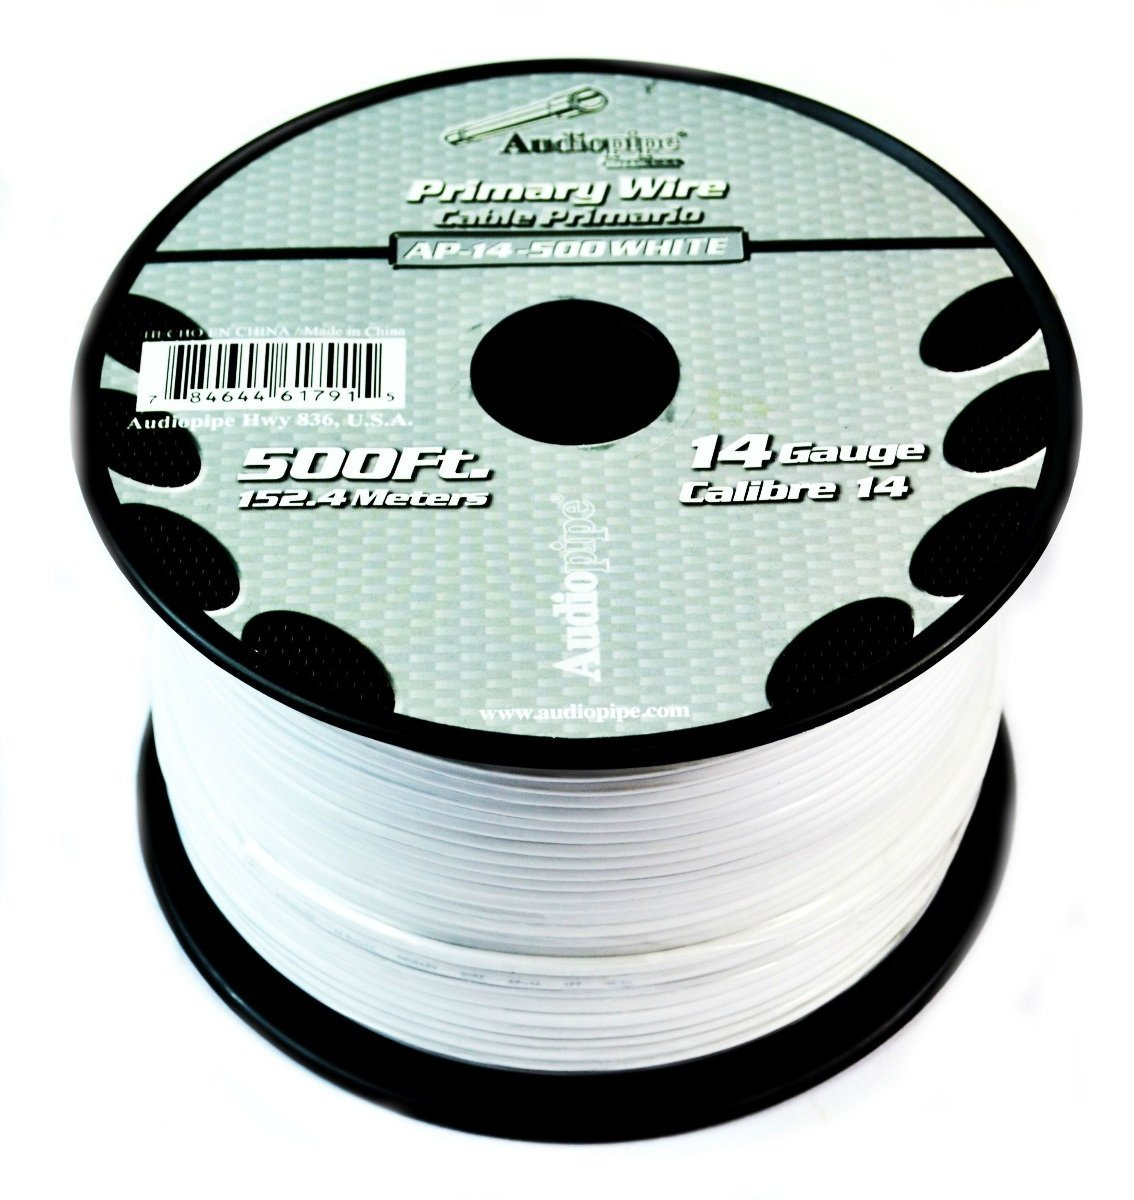 Audiopipe White 500' Feet 14 Gauge AWG Car Audio Primary Power Cable Remote Wire